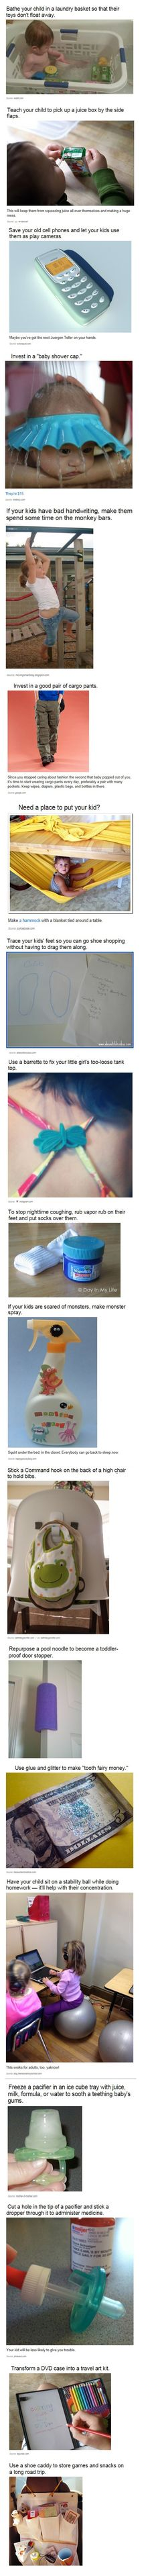 Life Hacks for Parenting